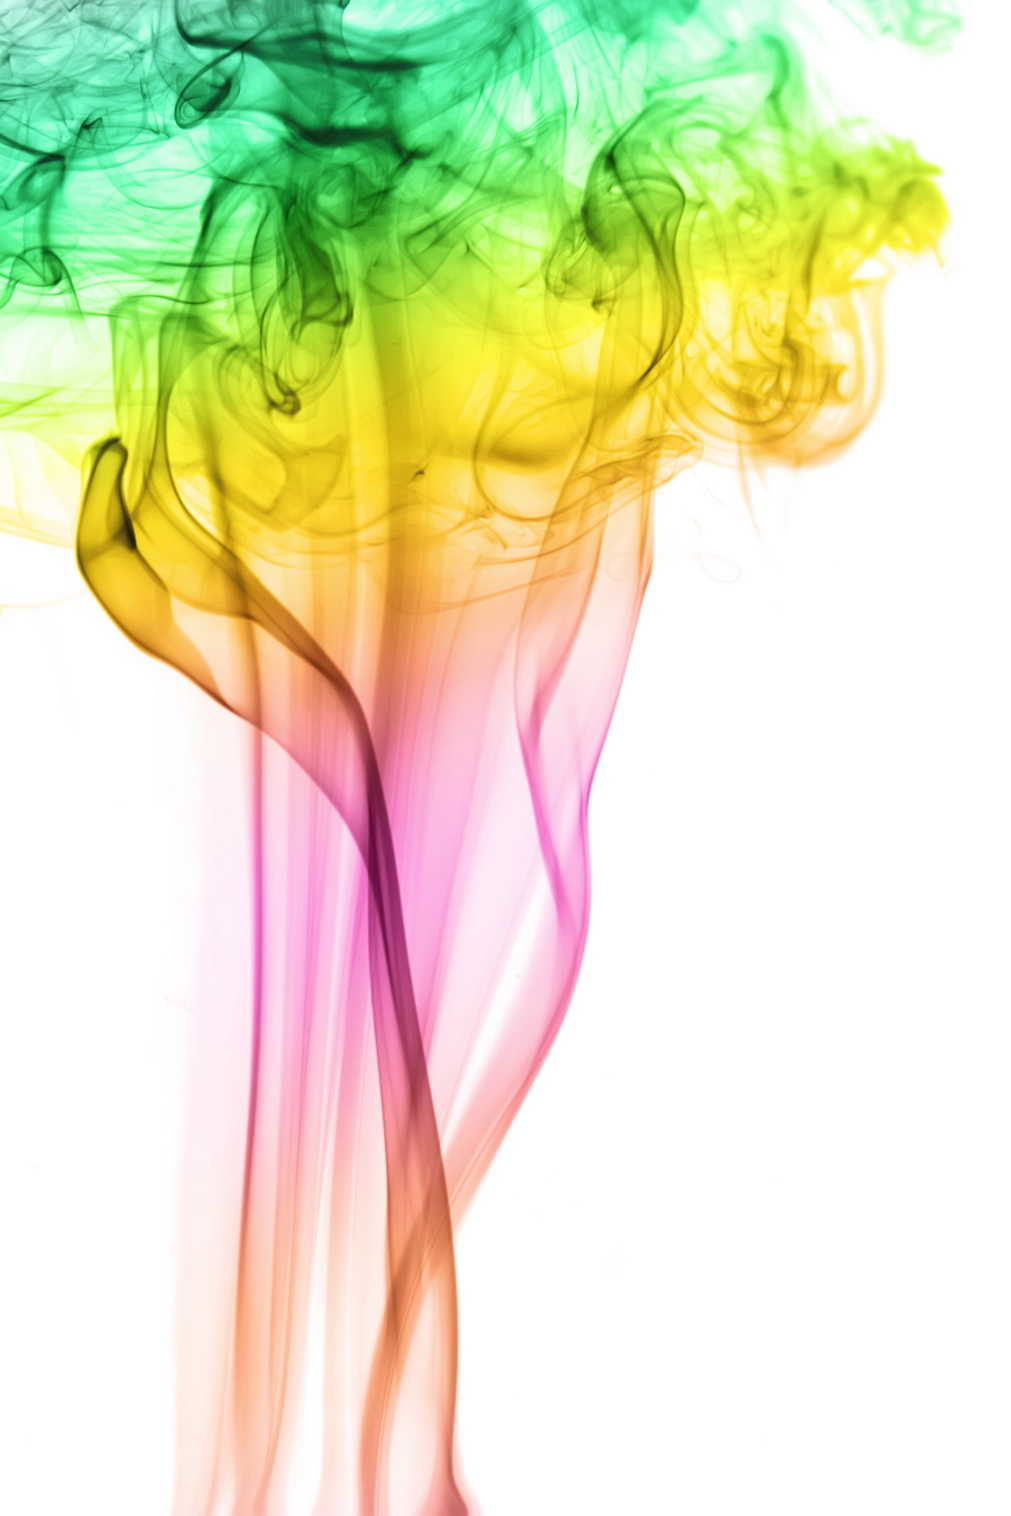 colored smoke, Abstract, Shape, Magic, Motion, HQ Photo